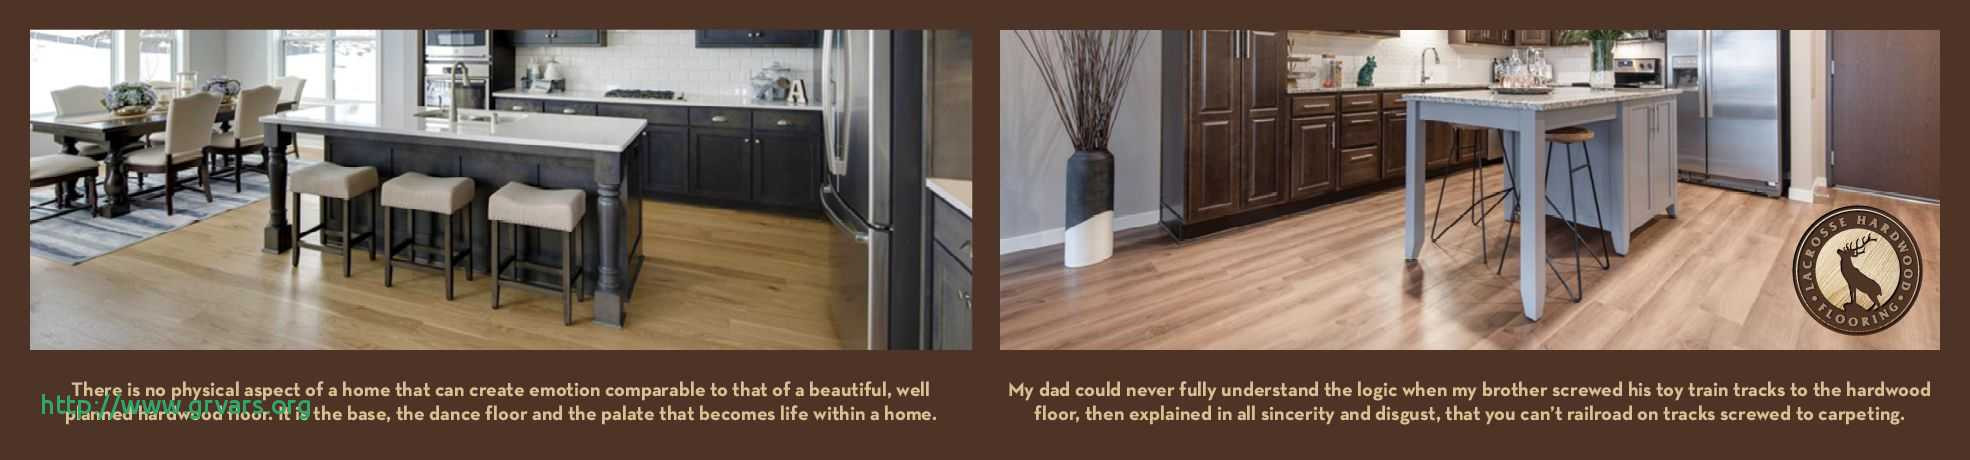 Hardwood Flooring Videos Of 24 Luxe Floors for Less Reviews Ideas Blog In Floors for Less Reviews Beau 40 Difference Between Laminate and Hardwood Flooring Ideas